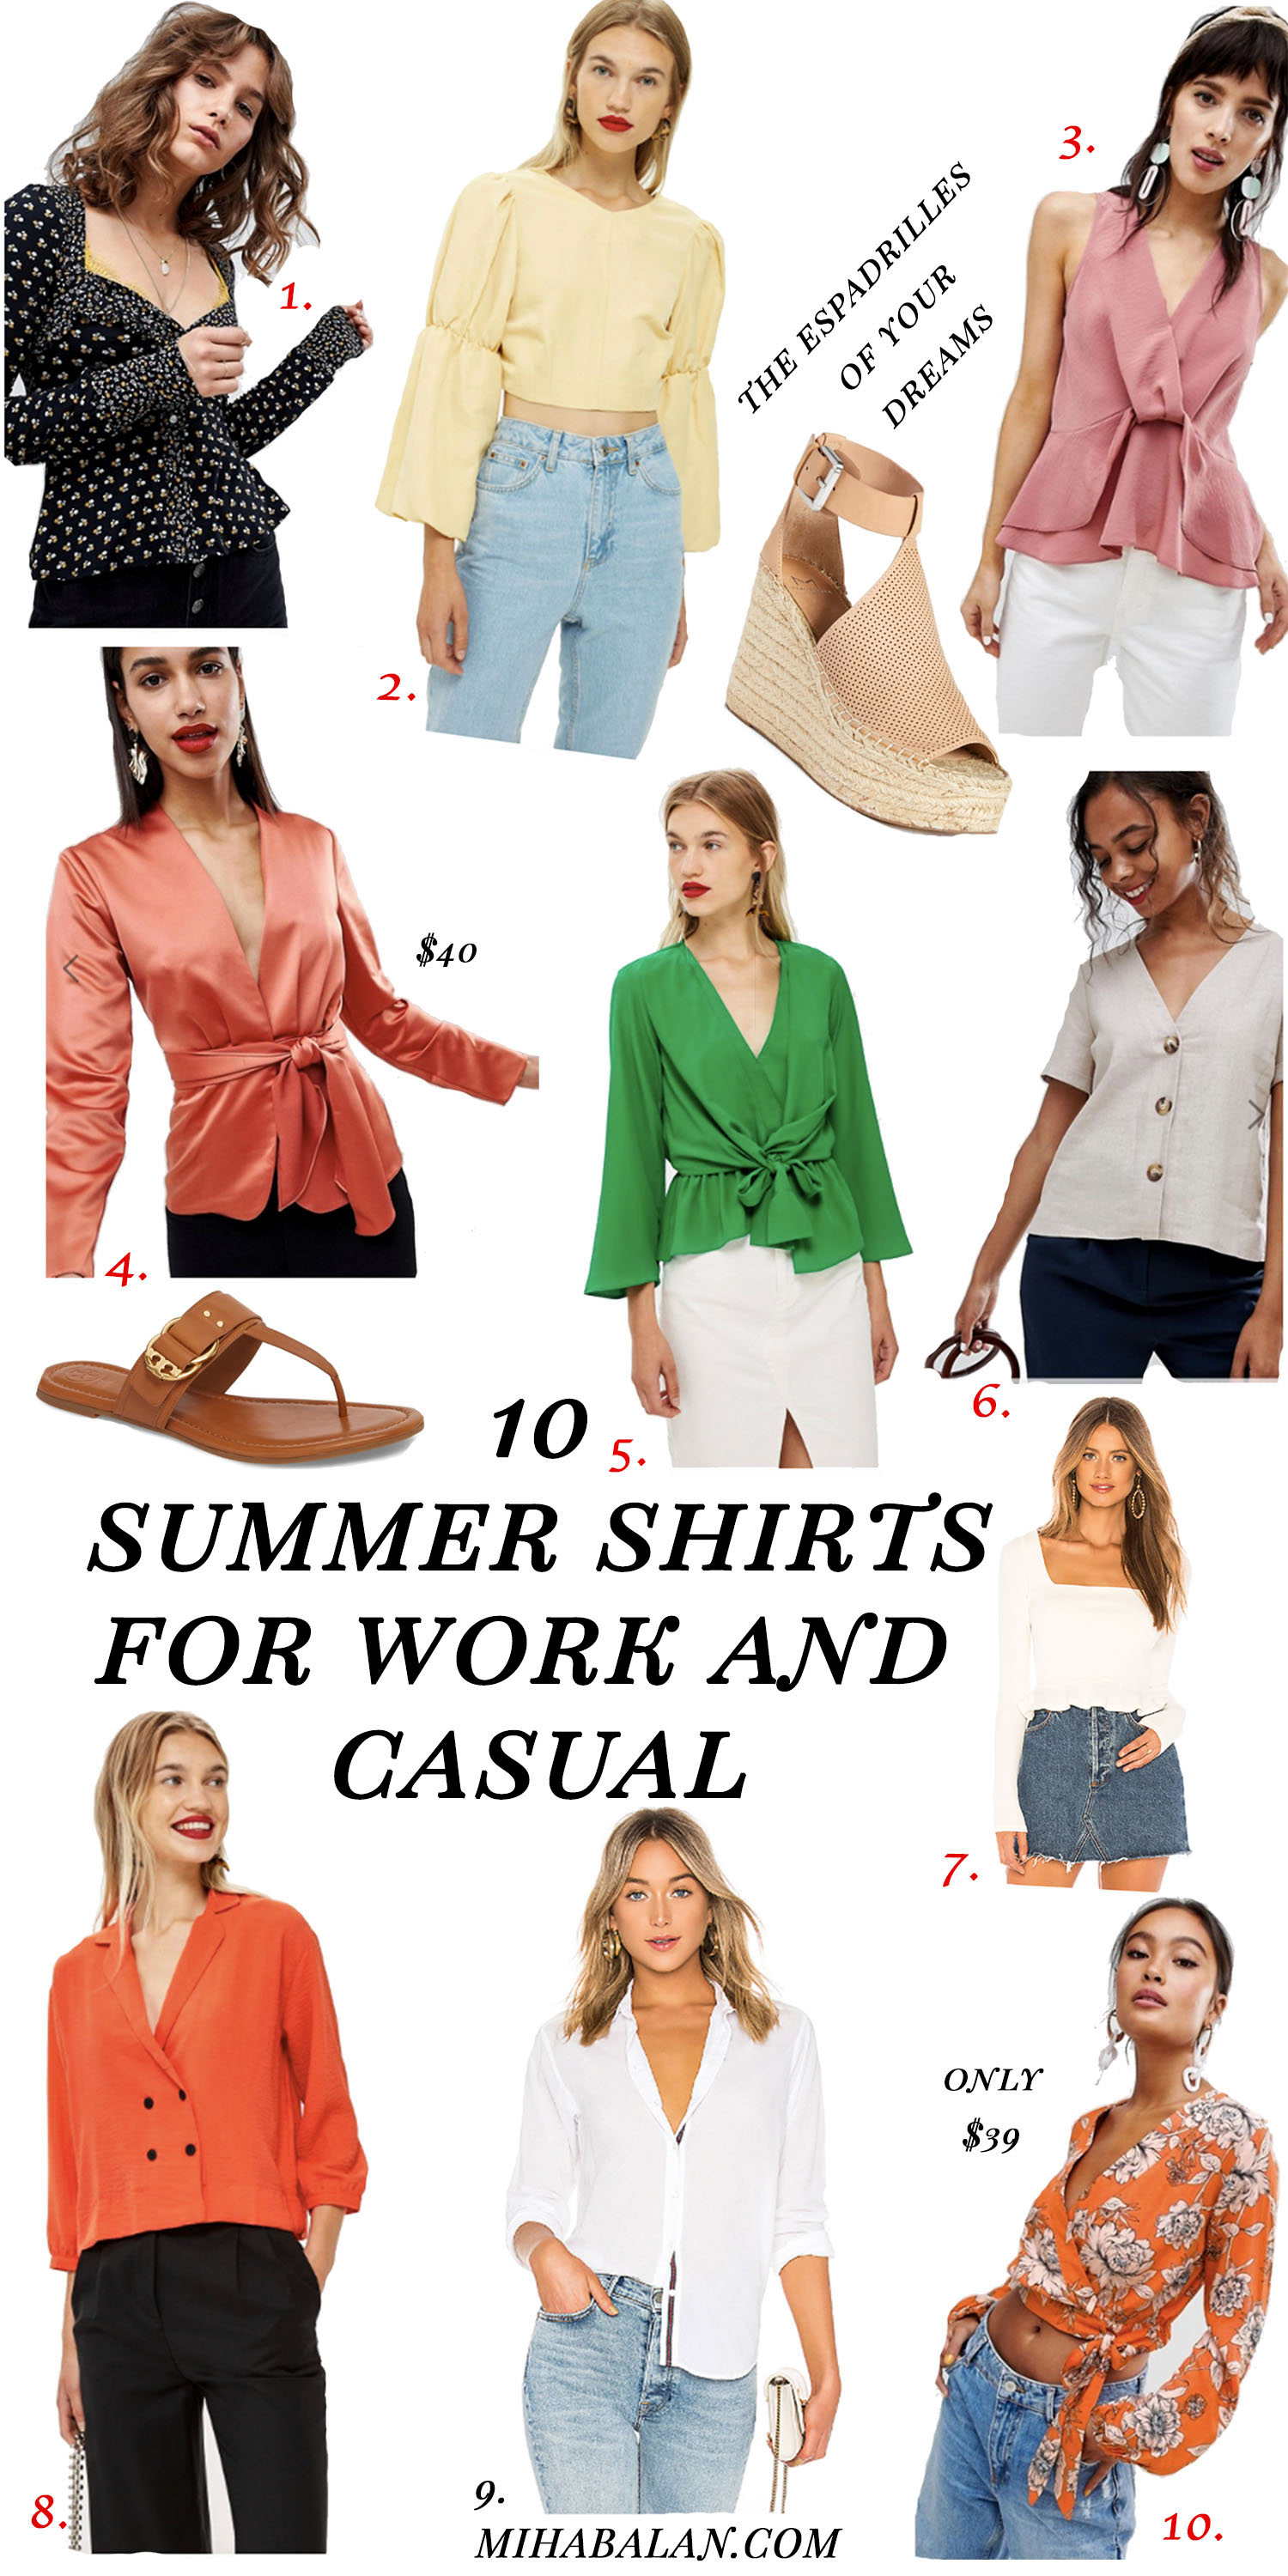 10 summer shirts and blouses for work wear and casual, summer fashion, summer style 2018jpg